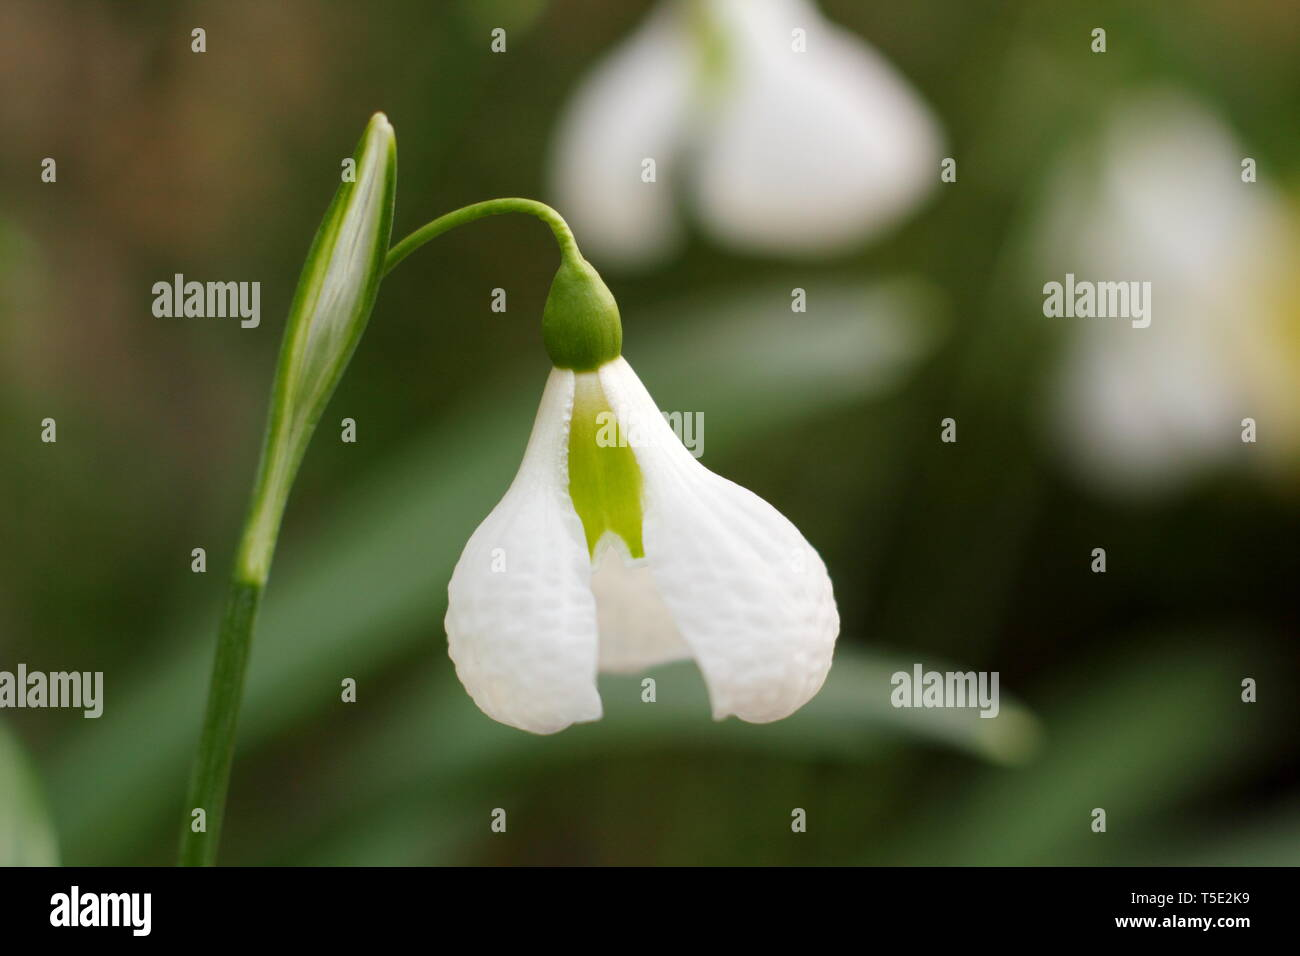 Galanthus plicatus 'Diggory' snowdrop displaying characteristic flared and textured outer sements (petals) - Febraury, UK - Stock Image